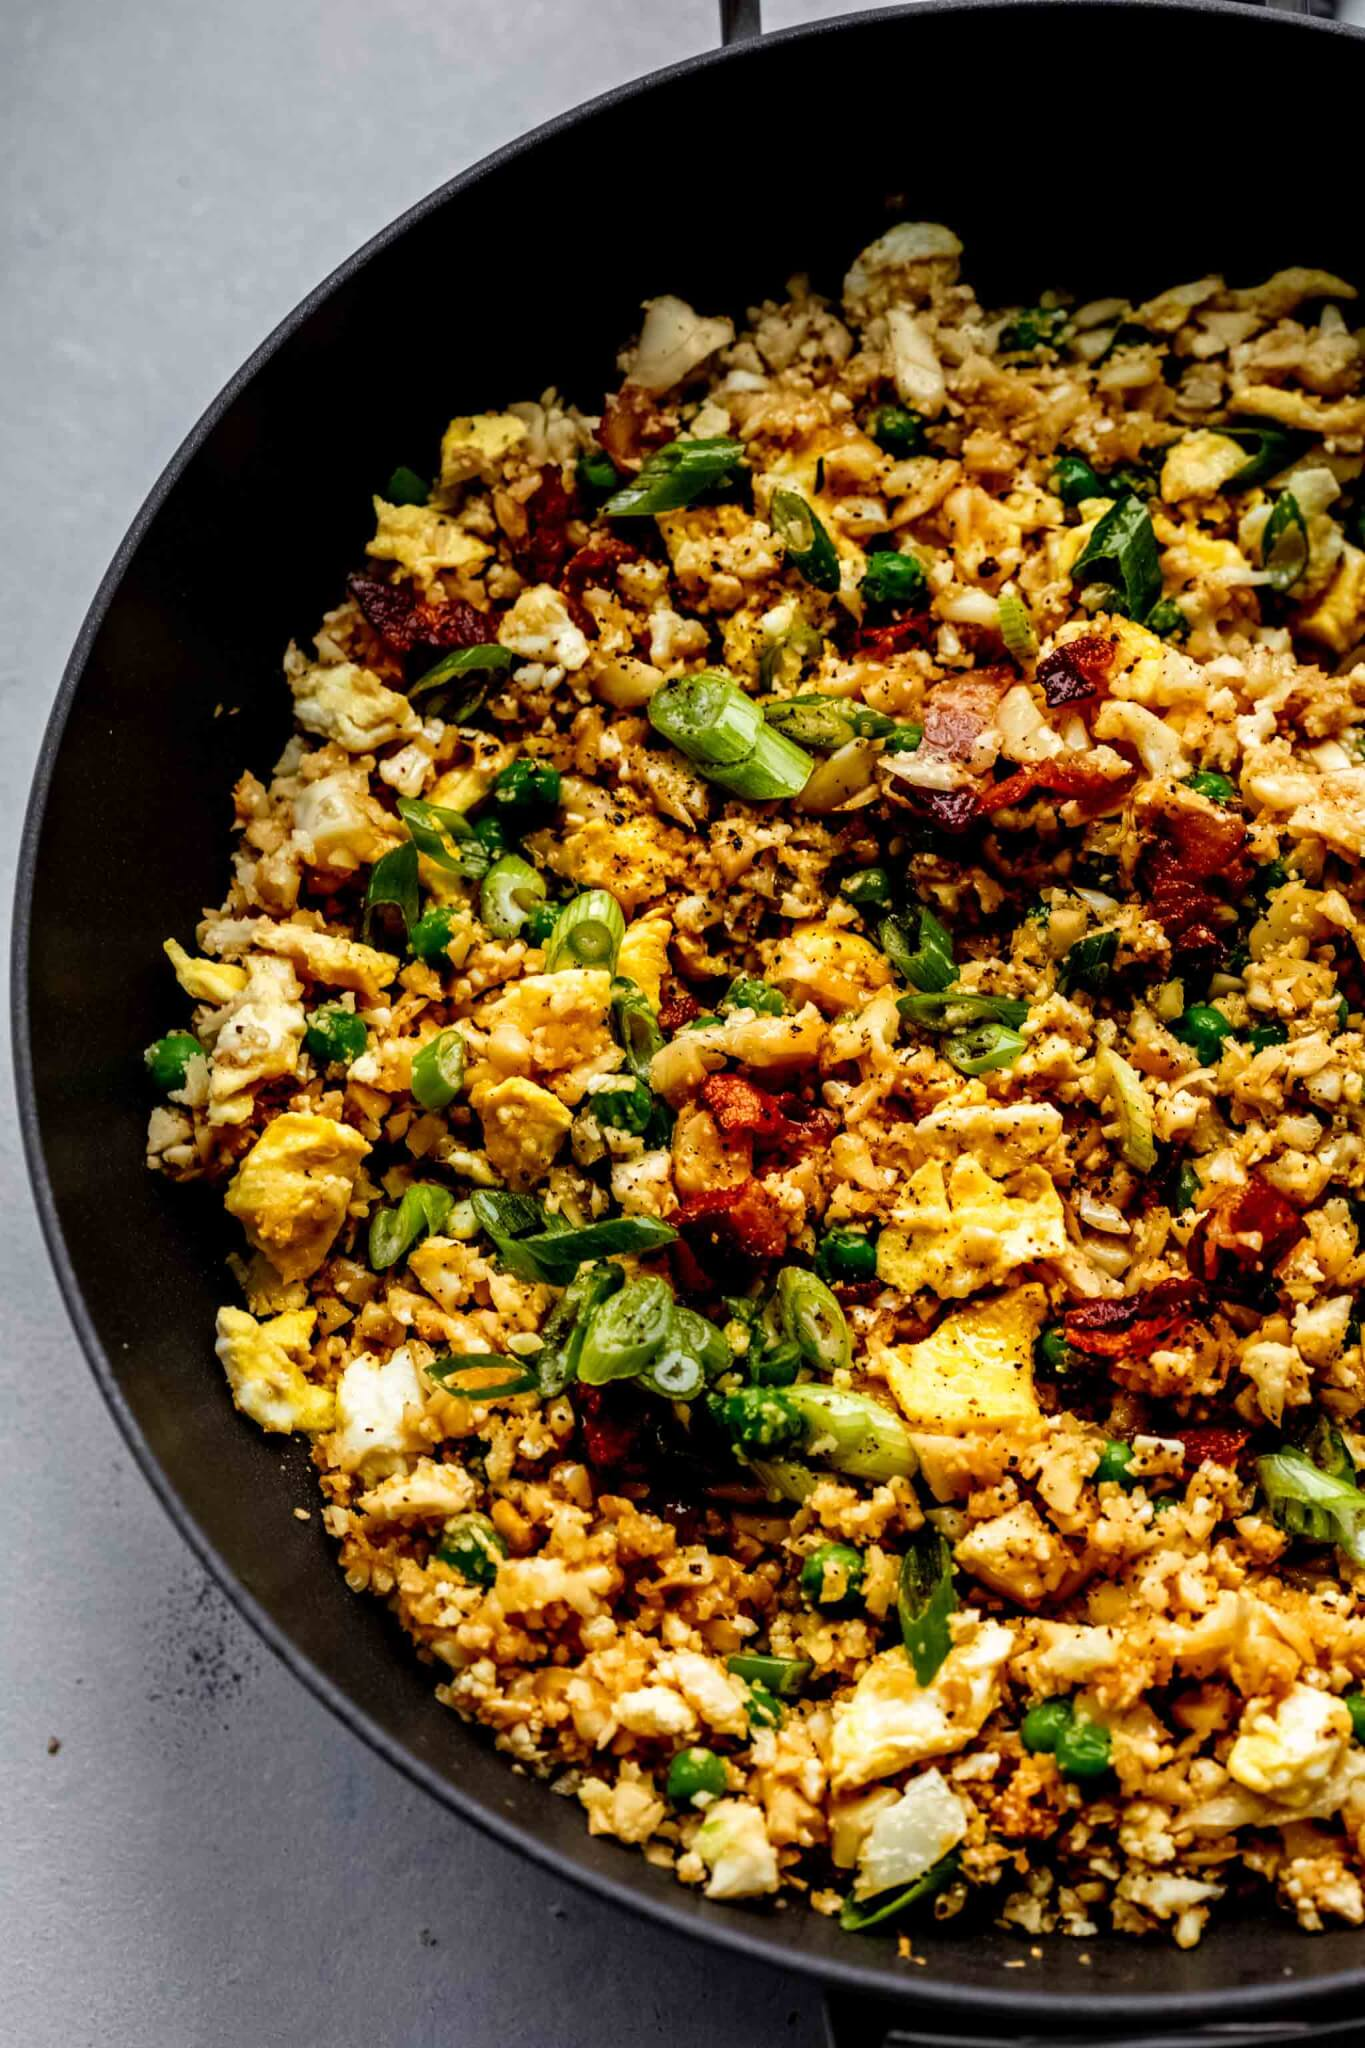 Cauliflower fried rice in wok after cooking.